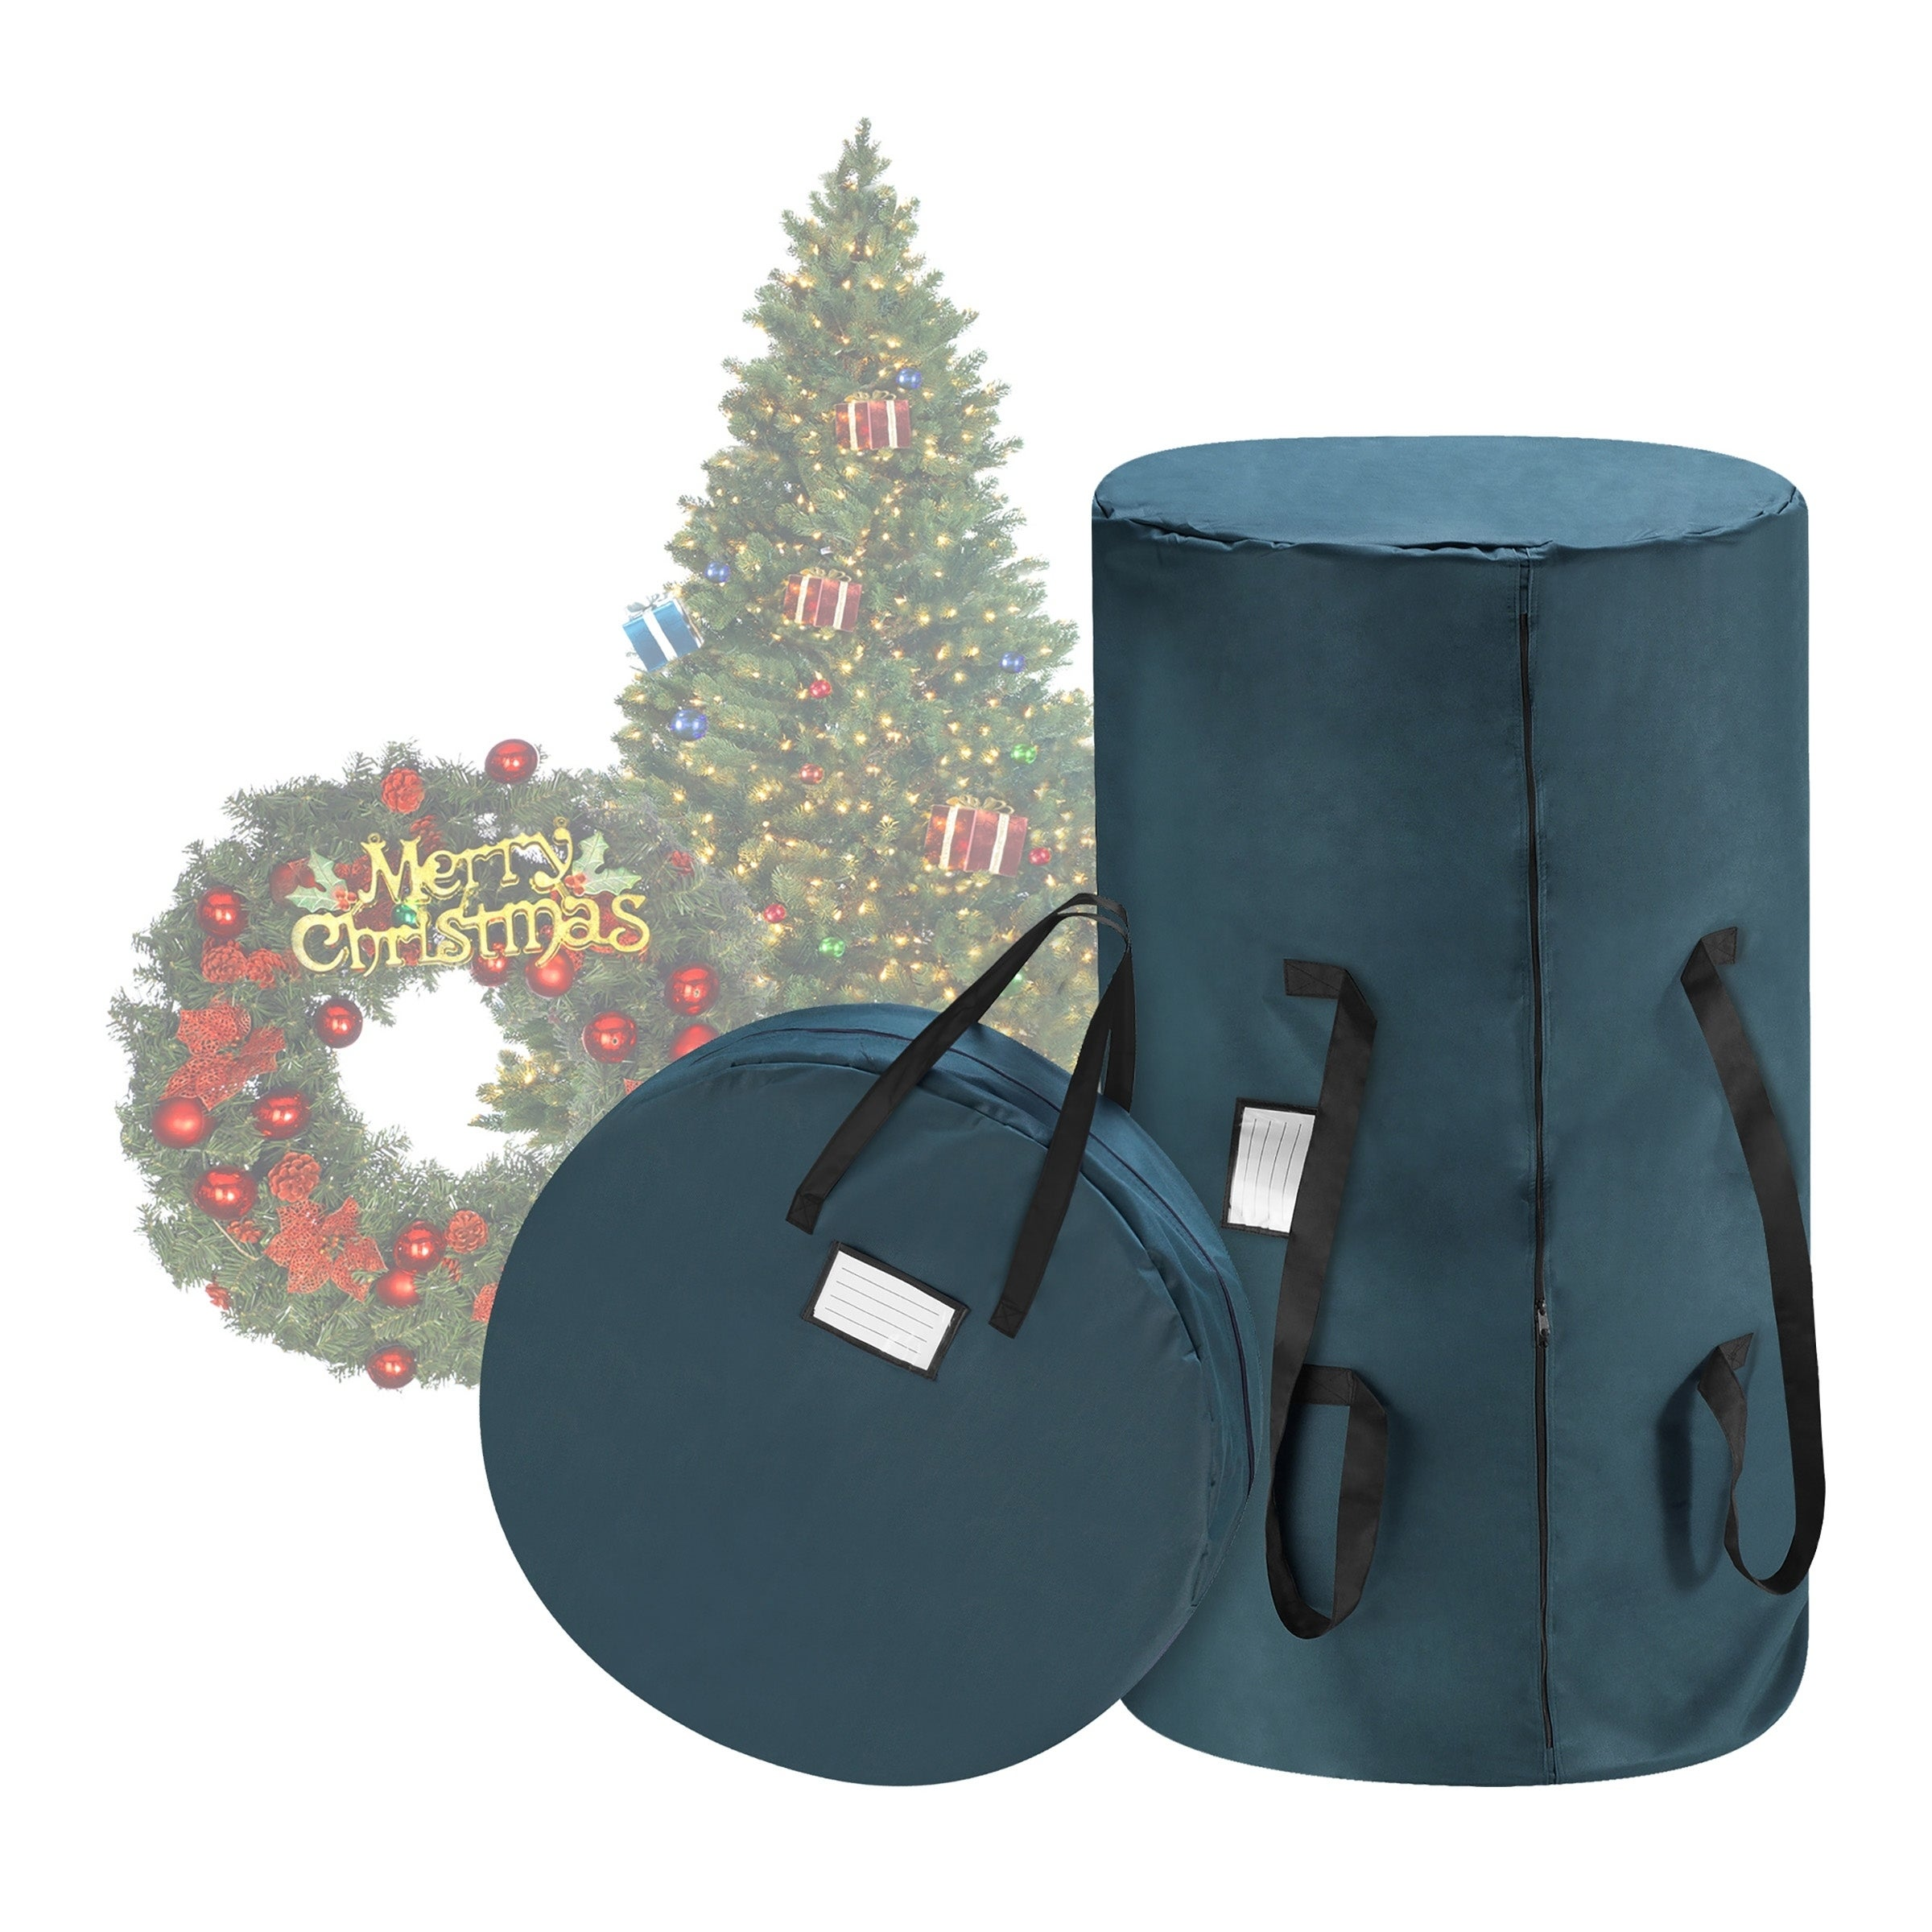 Christmas Tree Storage Bag.Tim Totes Canvas Christmas Tree Storage Bag 30 Wreath Bag